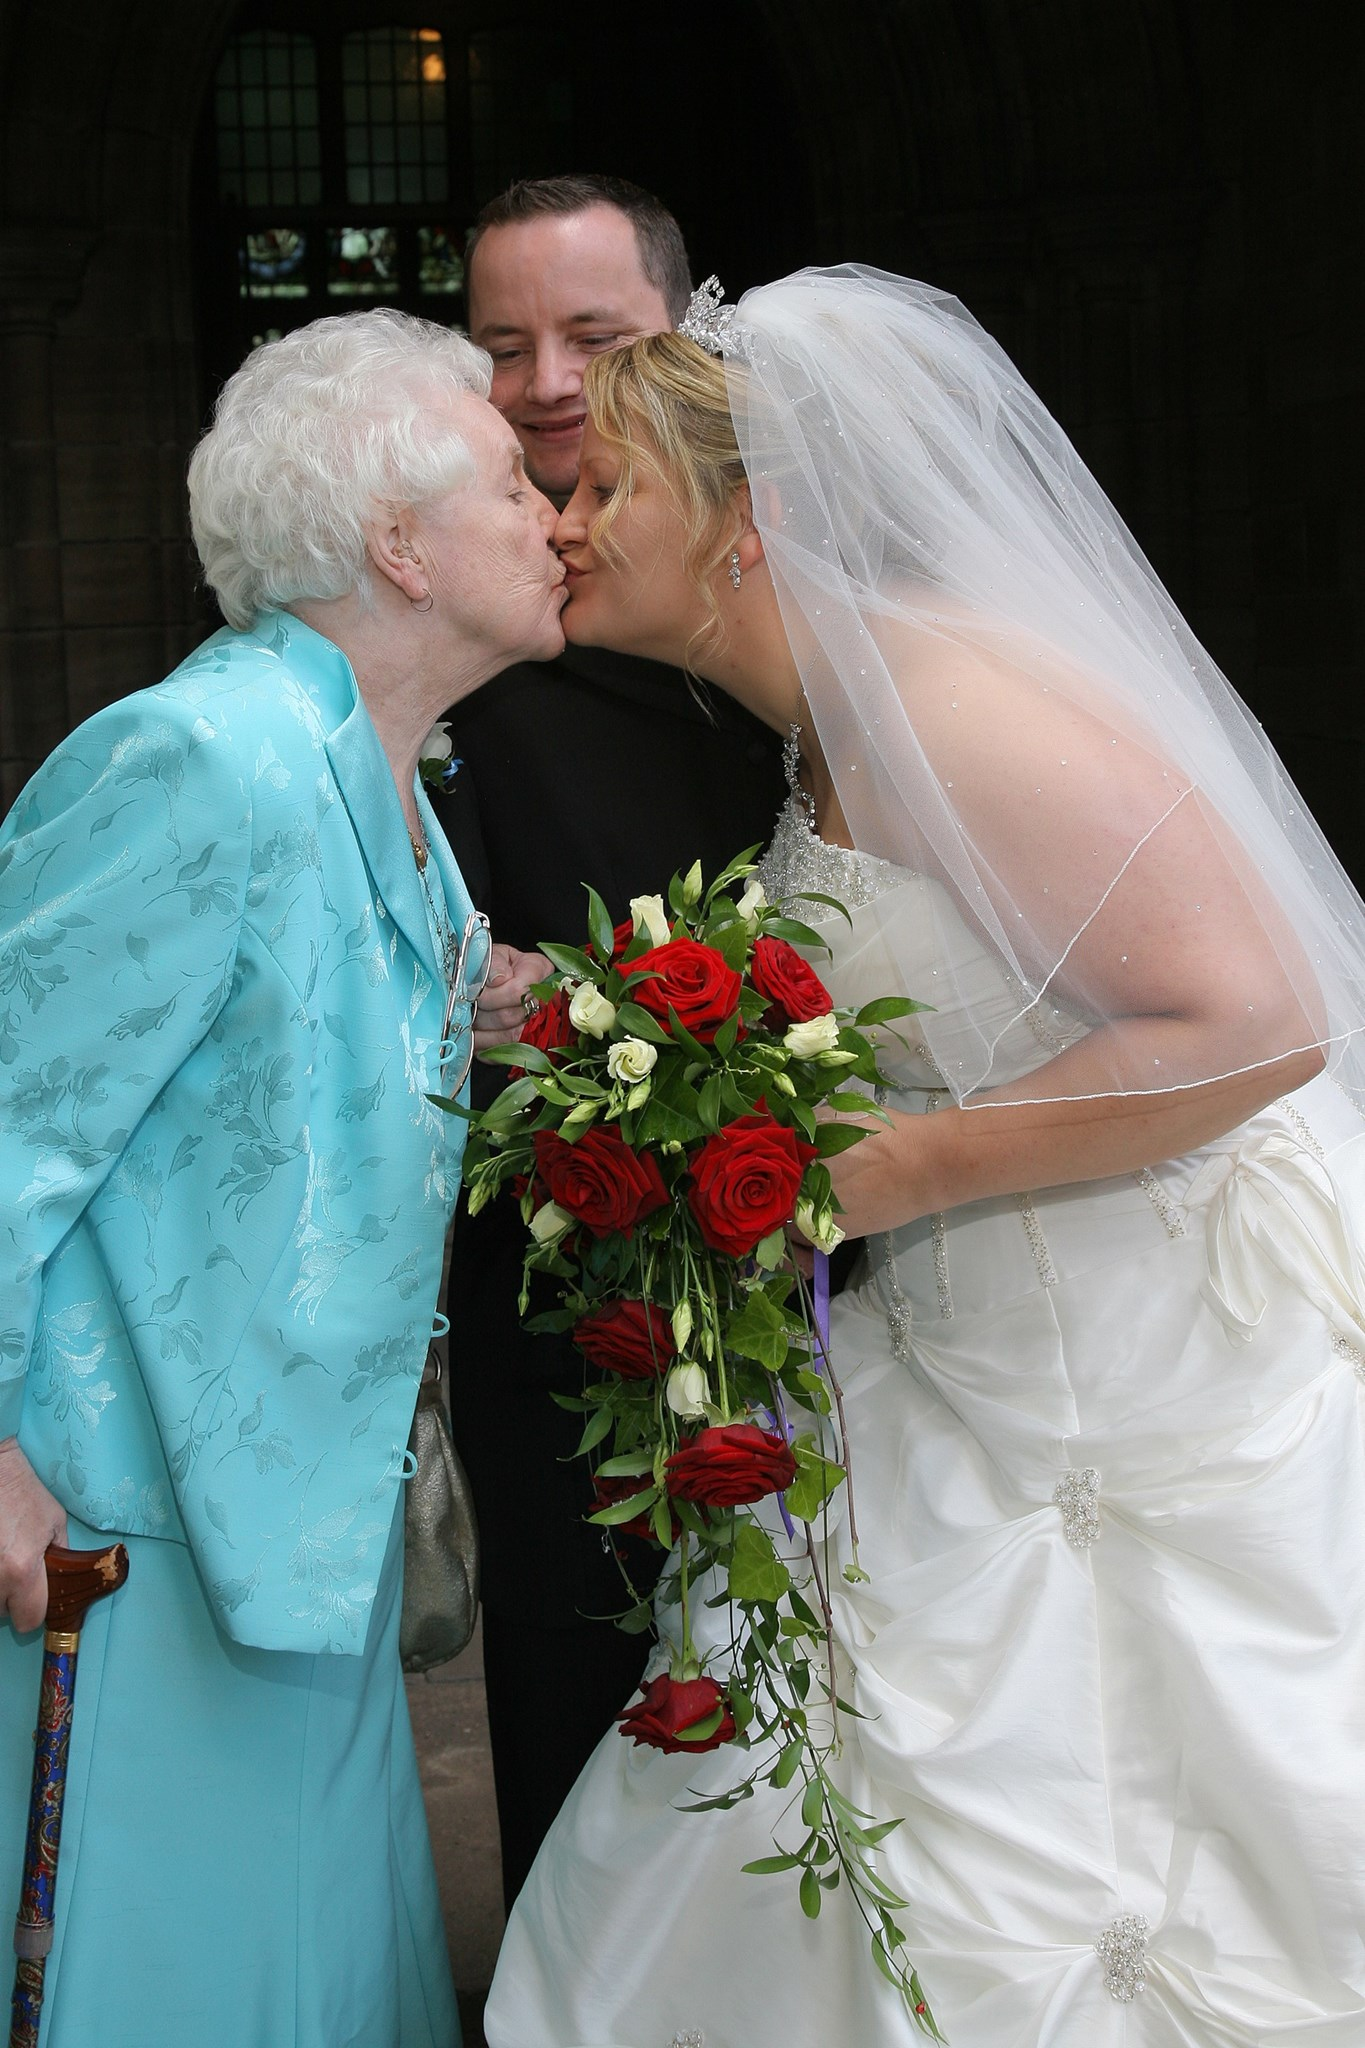 My Lovely Grandma kiss kiss x